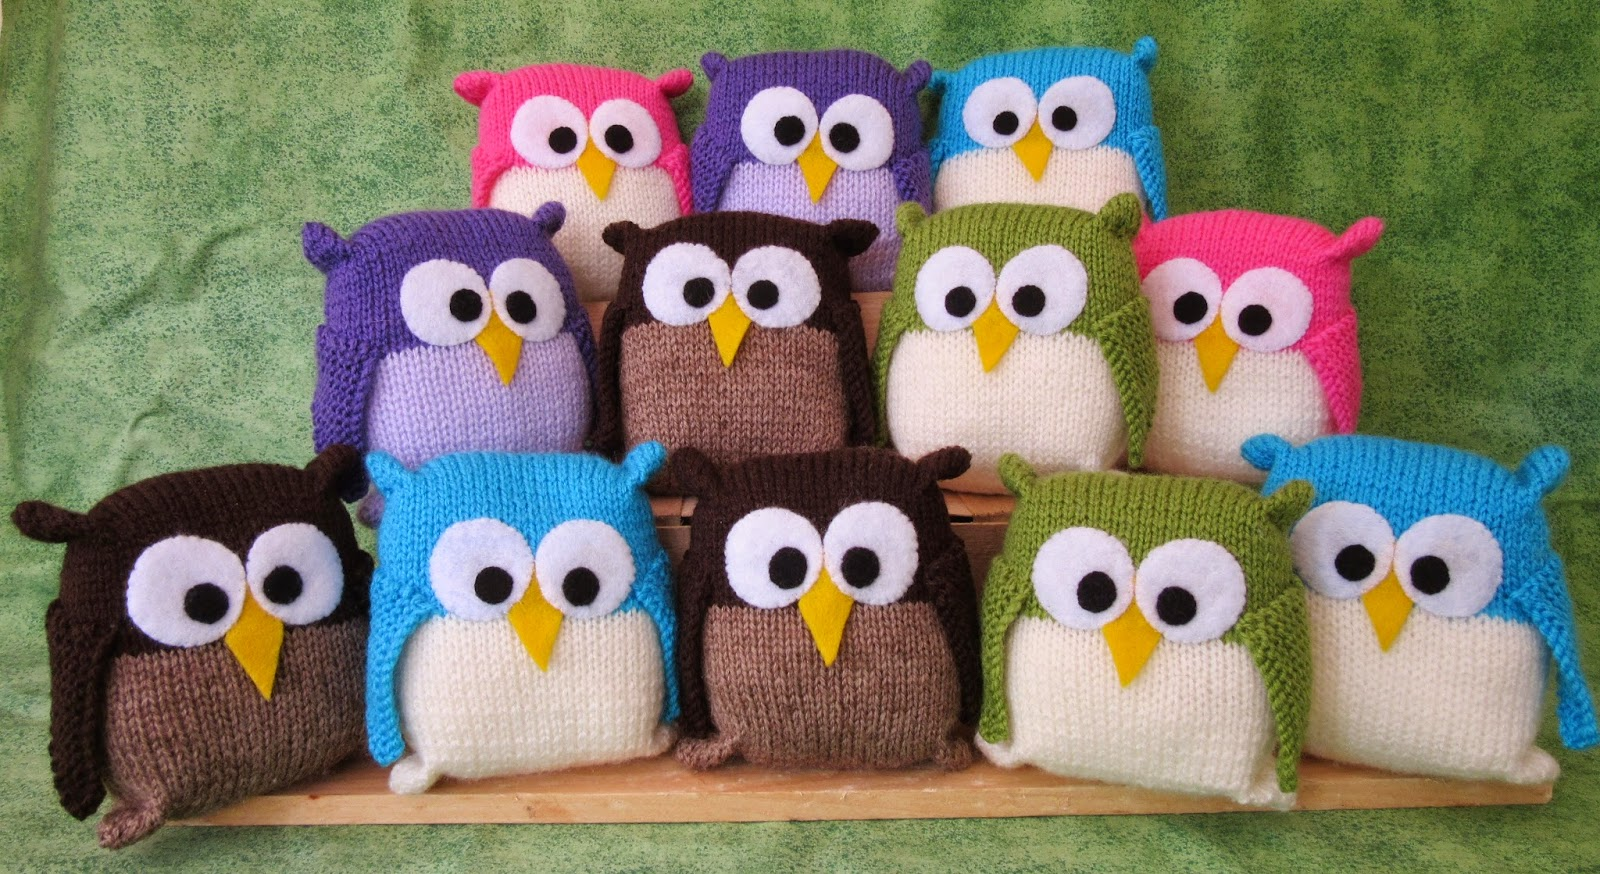 12 knitted owls in various colours sitting in 3 rows